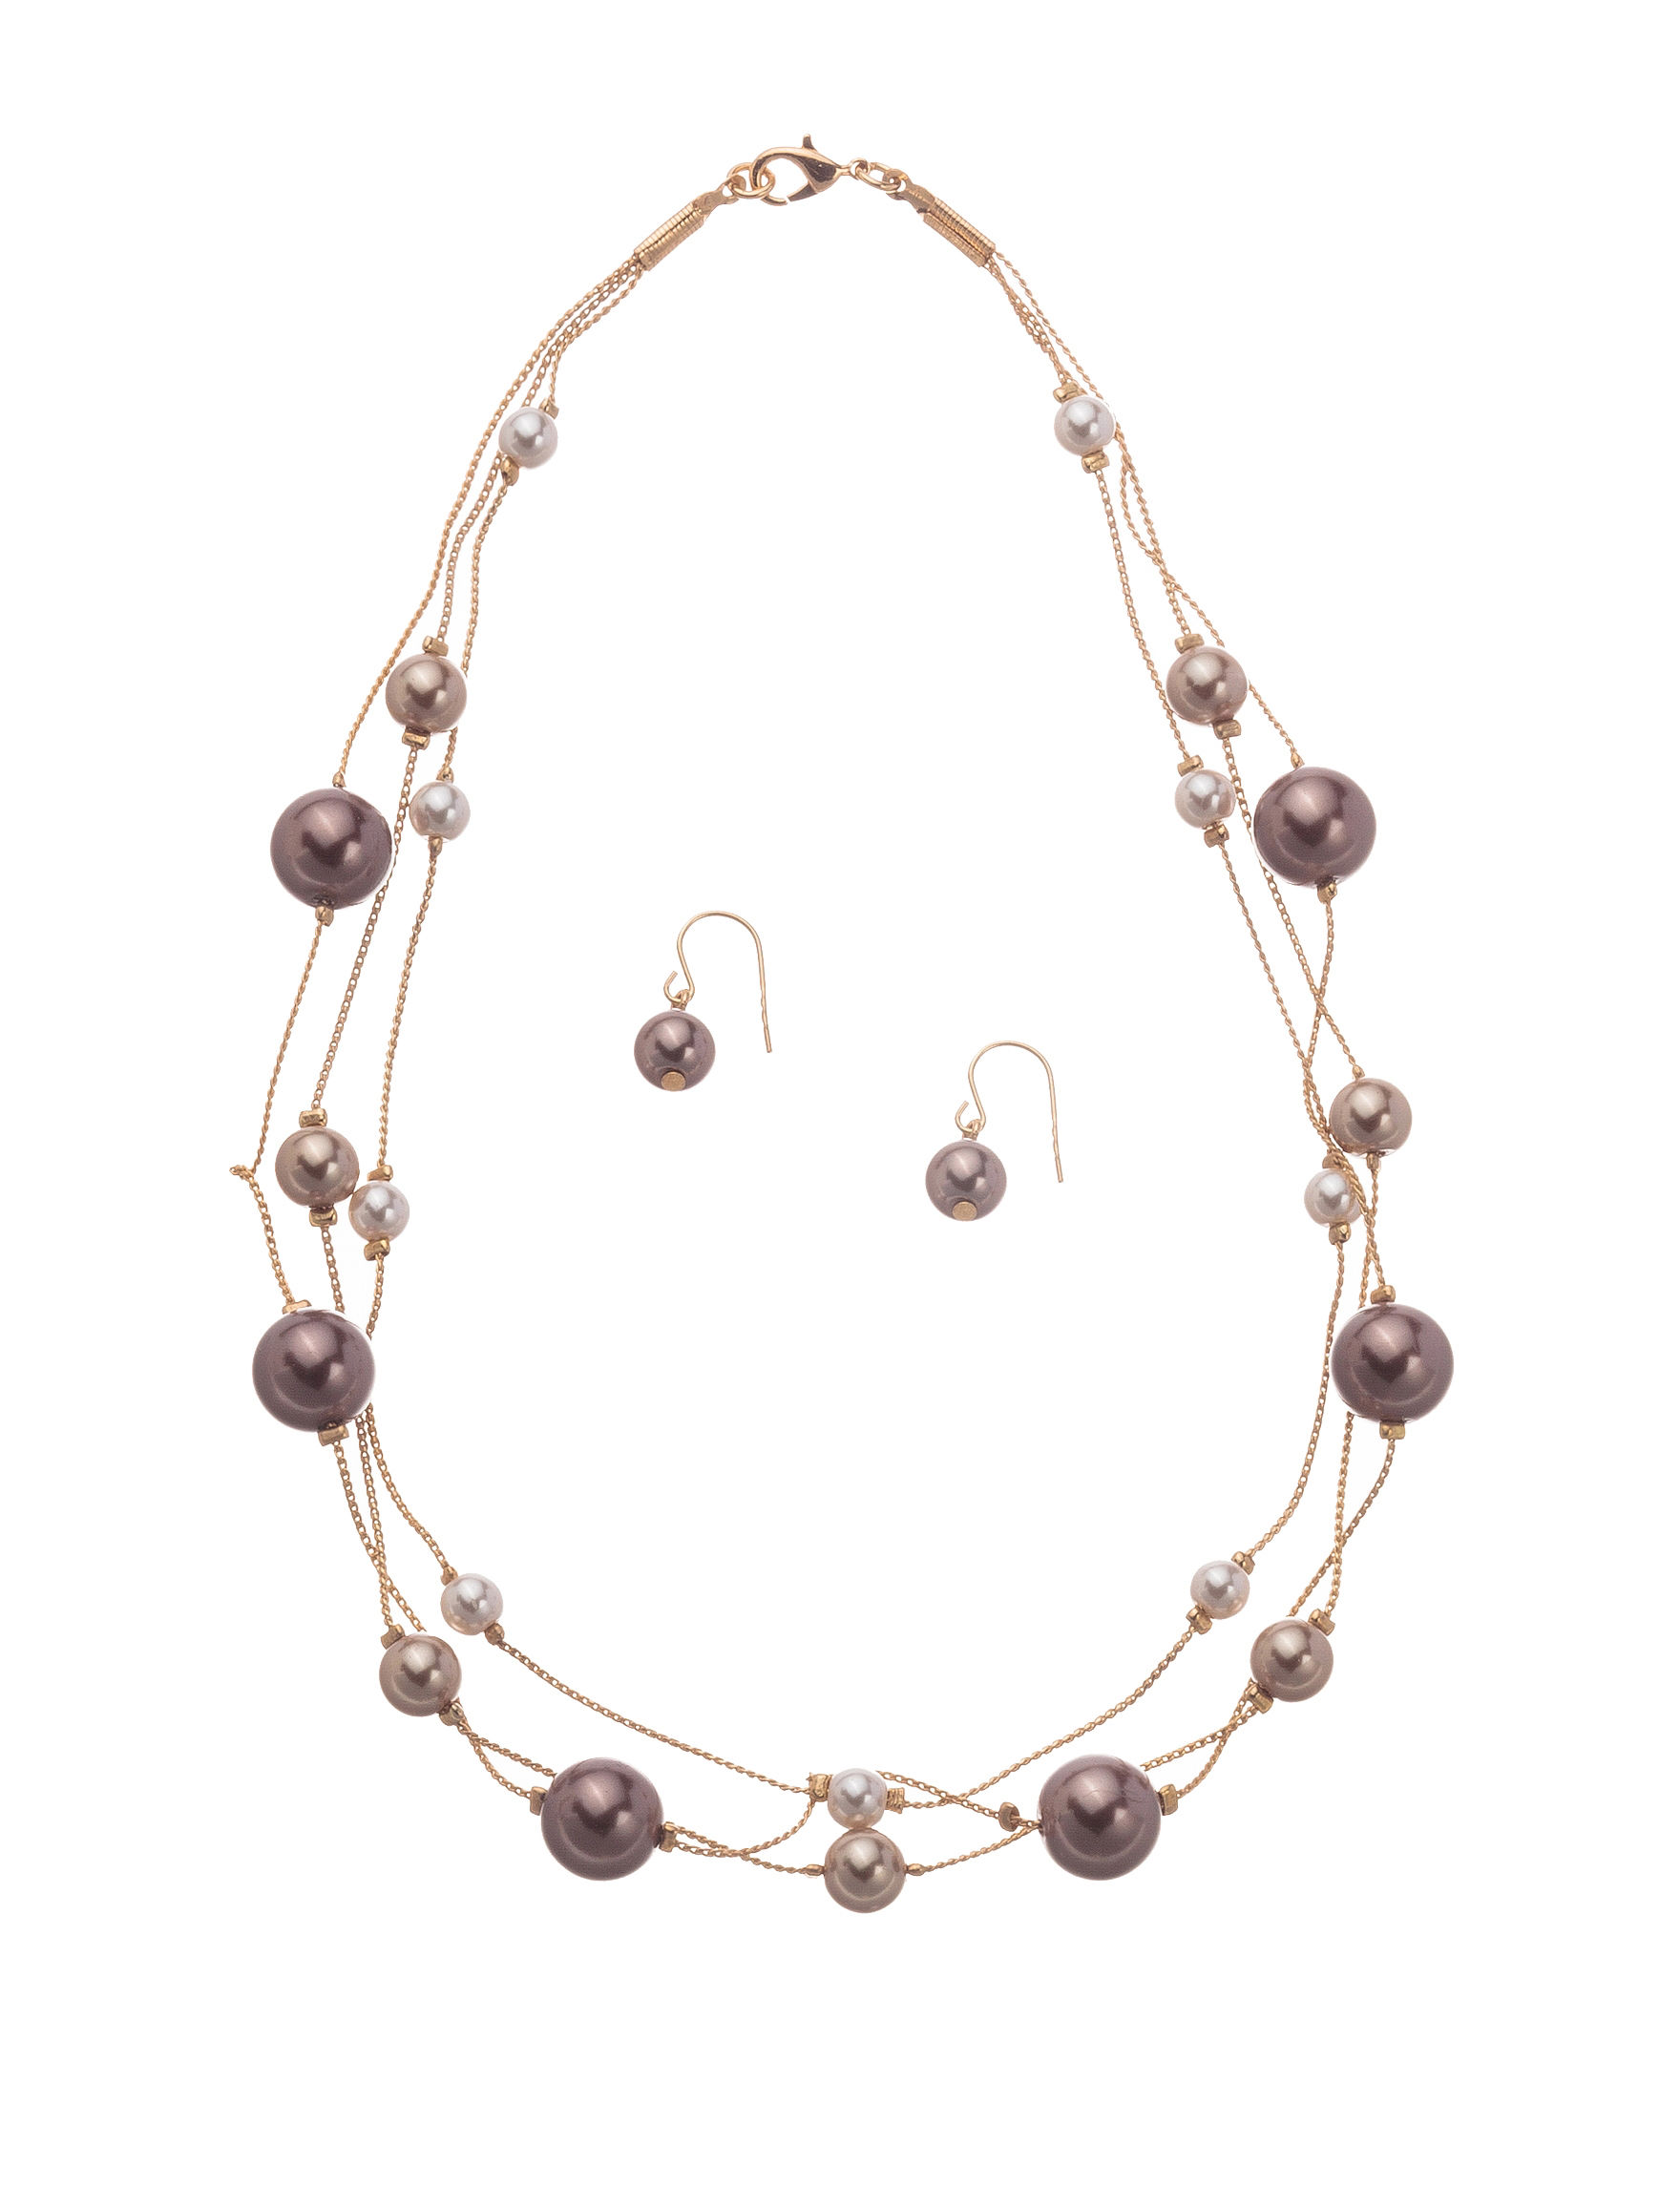 Hannah White / Silver Hoops Fashion Jewelry